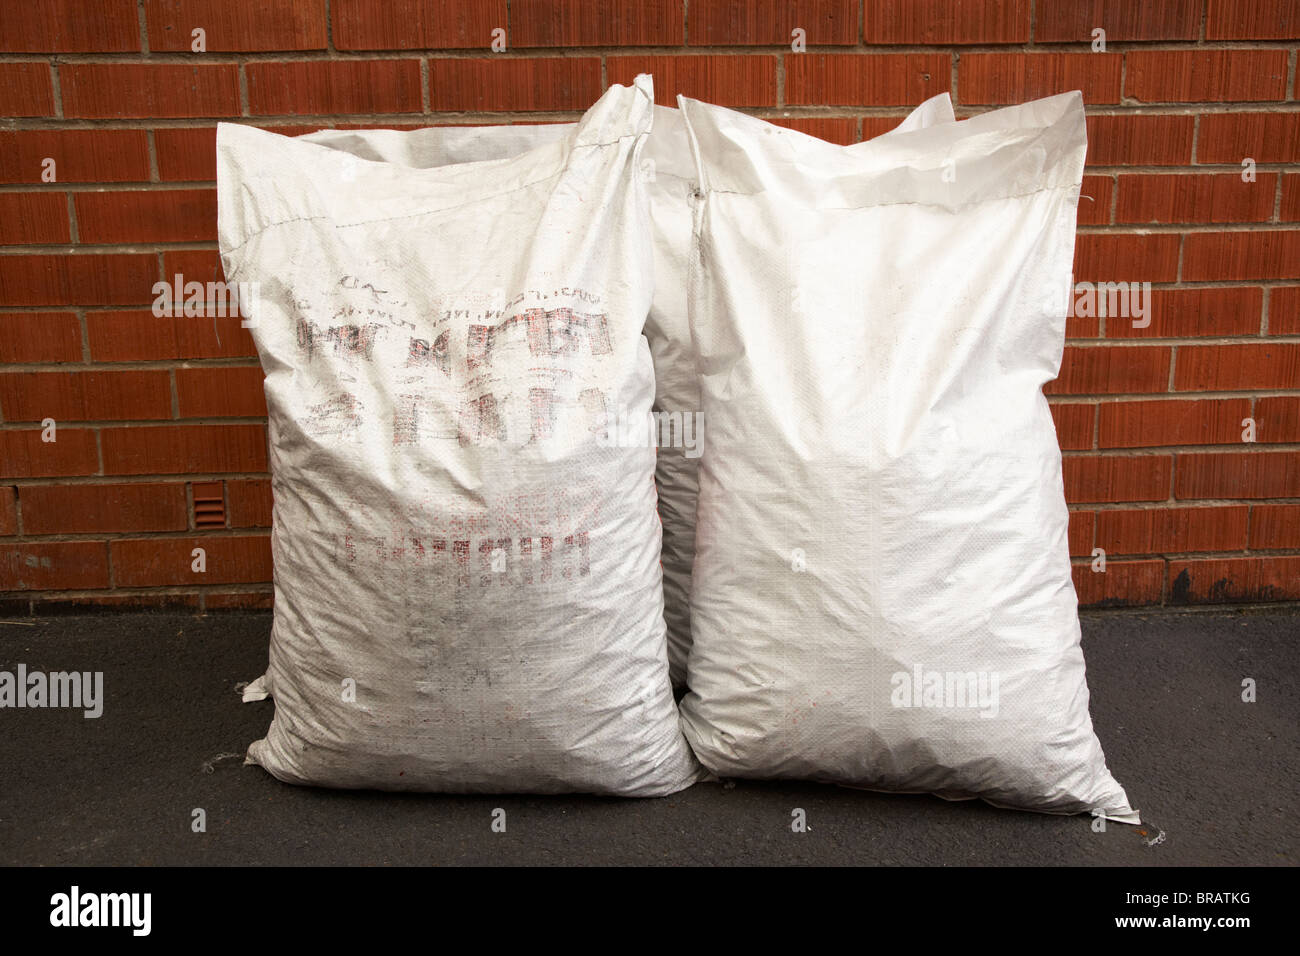 bags of coal in plastic 25kg bags delivered leaning against a red brick house wall in the uk - Stock Image